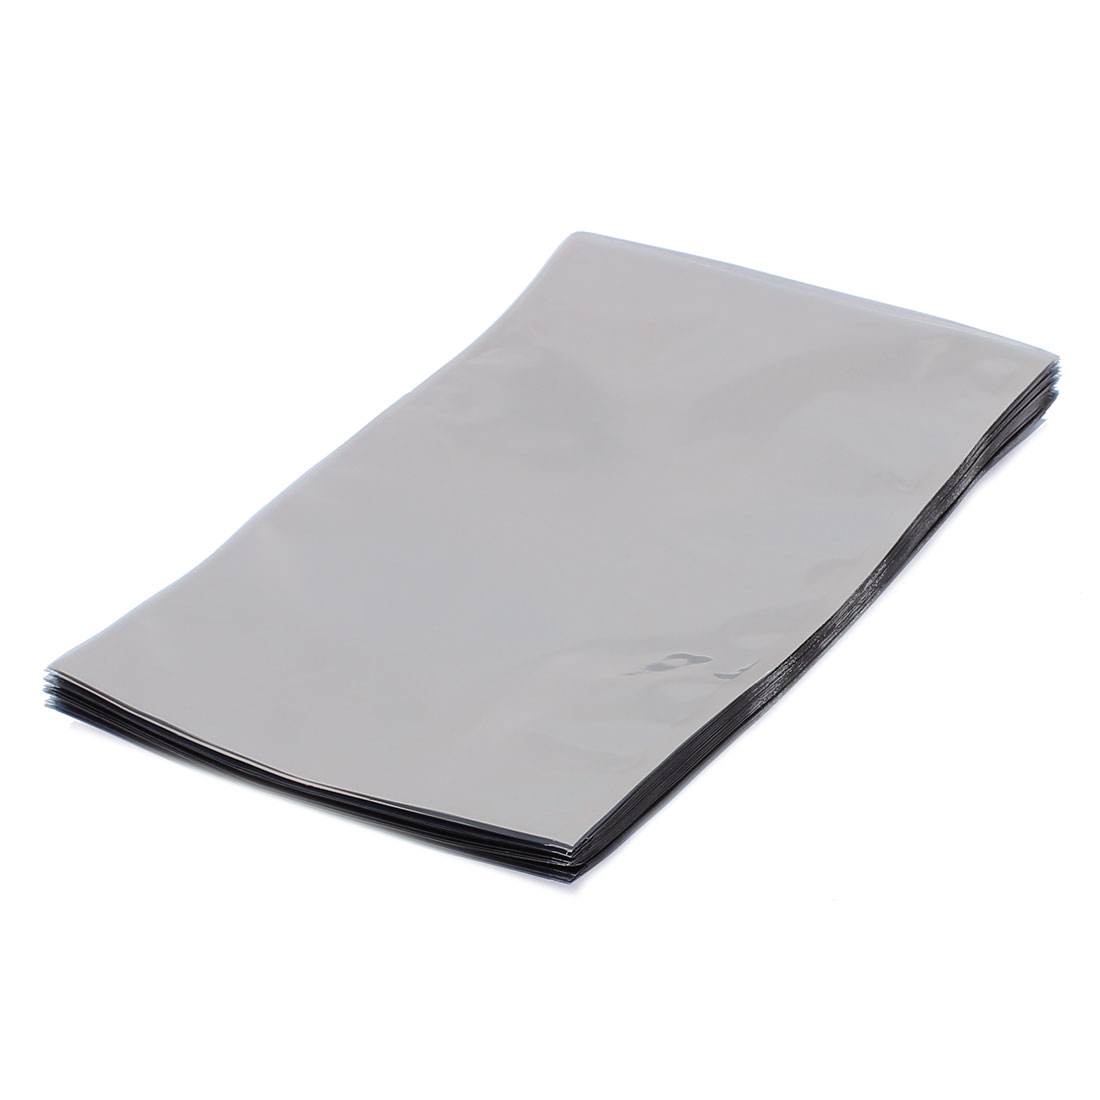 50 Pcs 155mm x 230mm Silver Tone Flat Open Top Anti Static Bag For Electronics